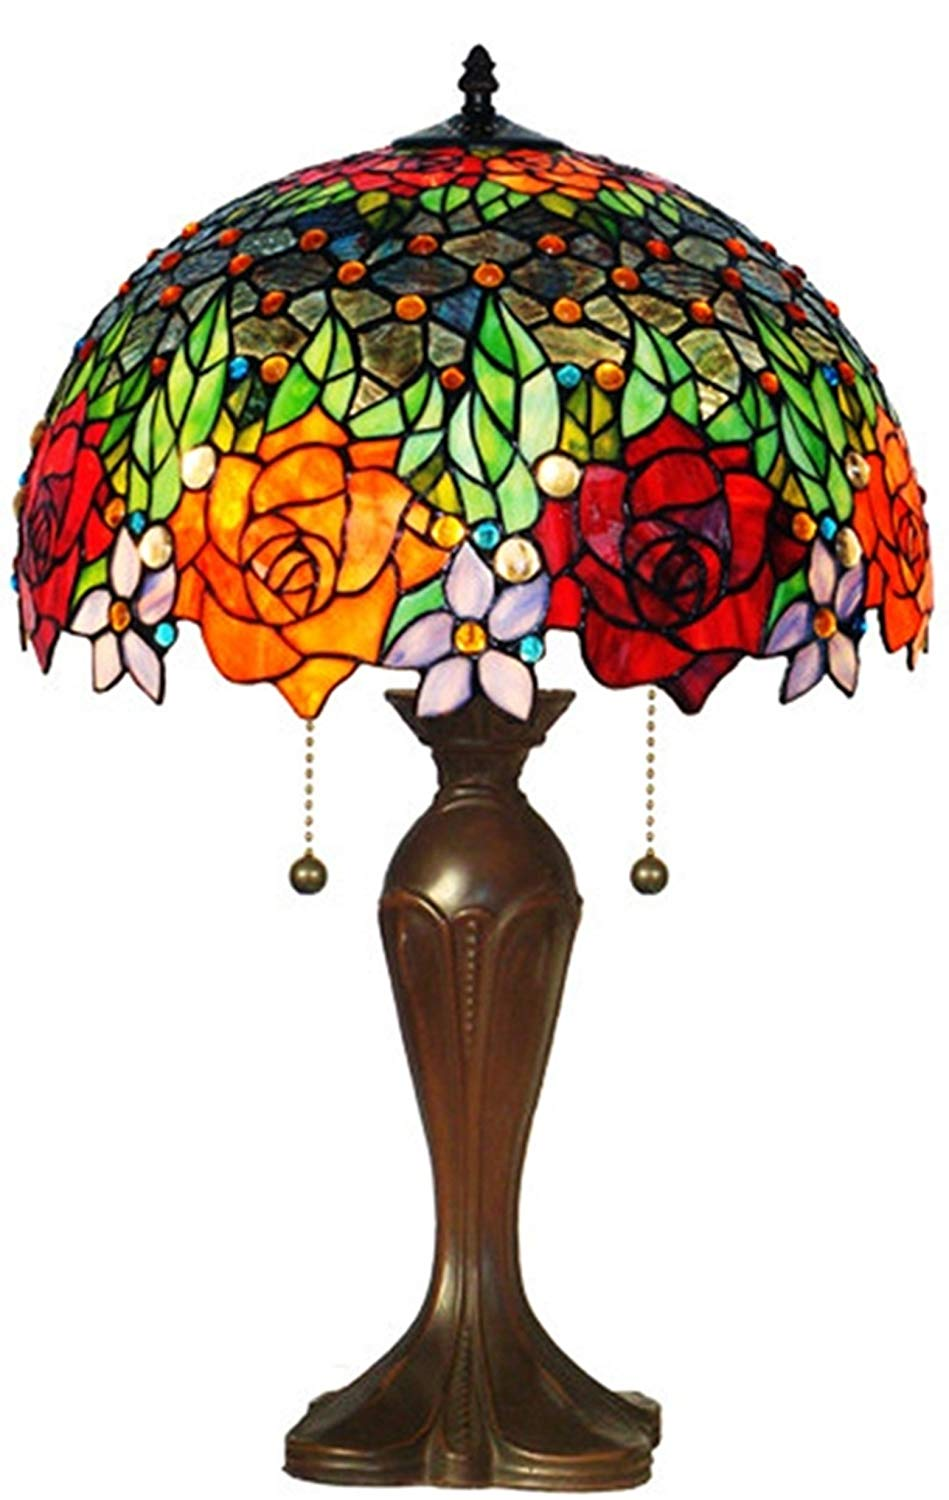 tiffany lamps amora lighting amora lighting am1534tl16 tiffany style roses table lamp 23  in THOVJFT